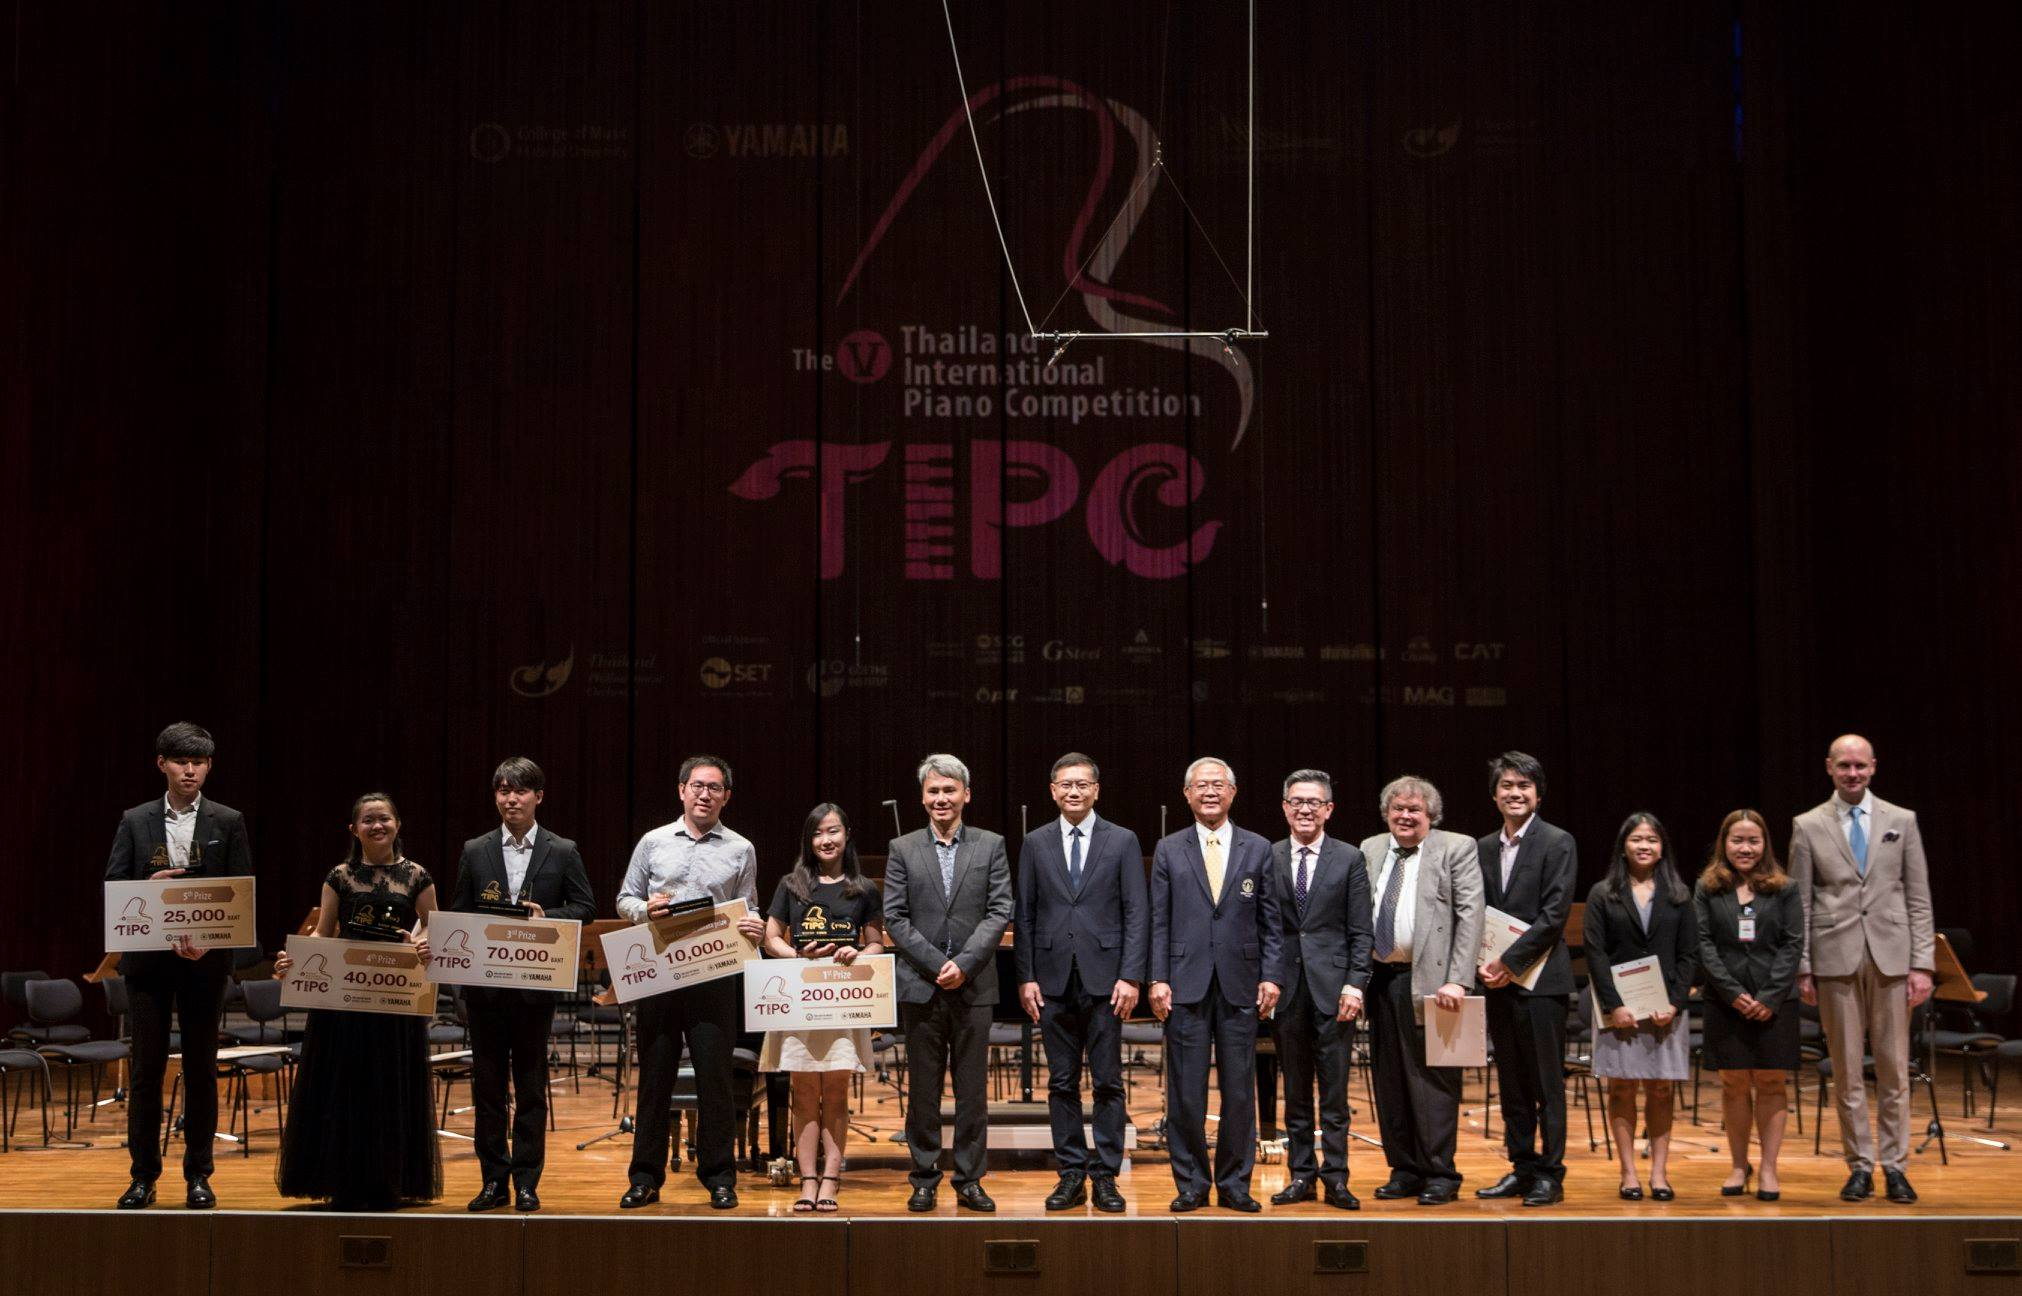 Group of winners on stage at V Thailand Piano Competition